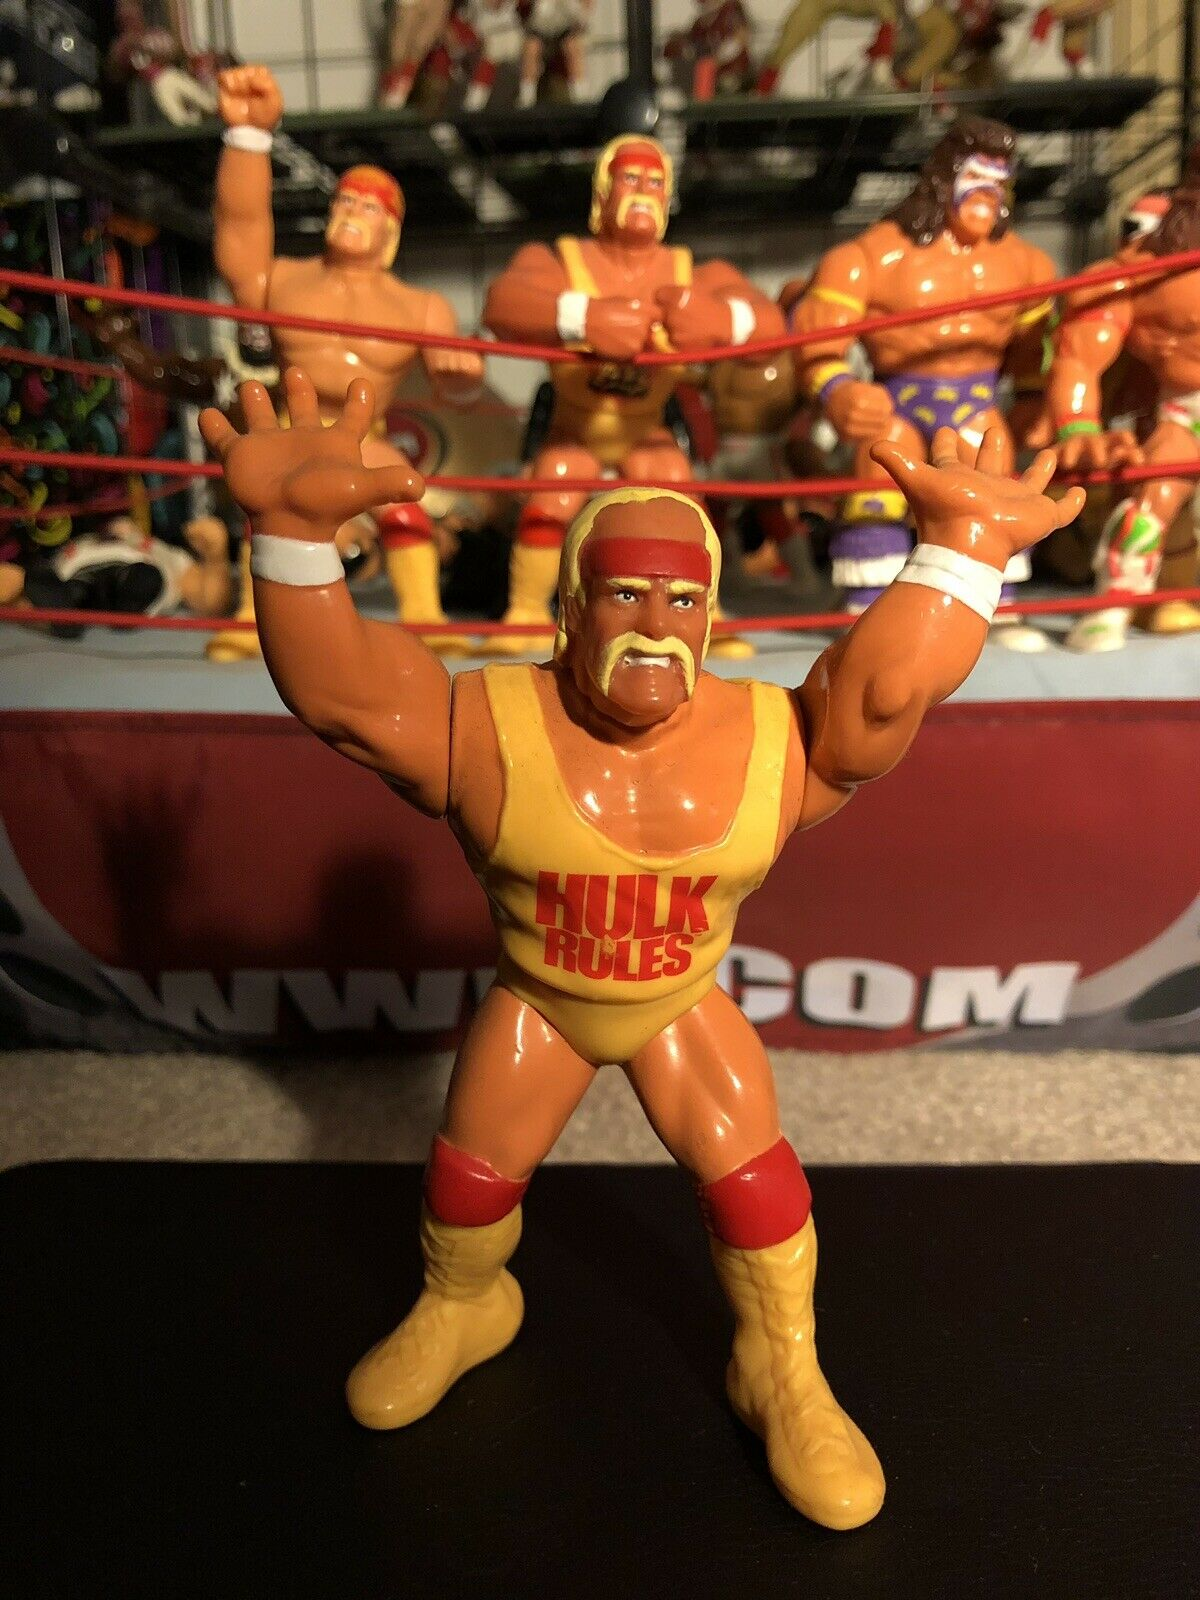 WWF  Series 1 HULK HOGAN Press Slam  Hulk Rules  Wrestling Action Figure WWE  Achetez maintenant